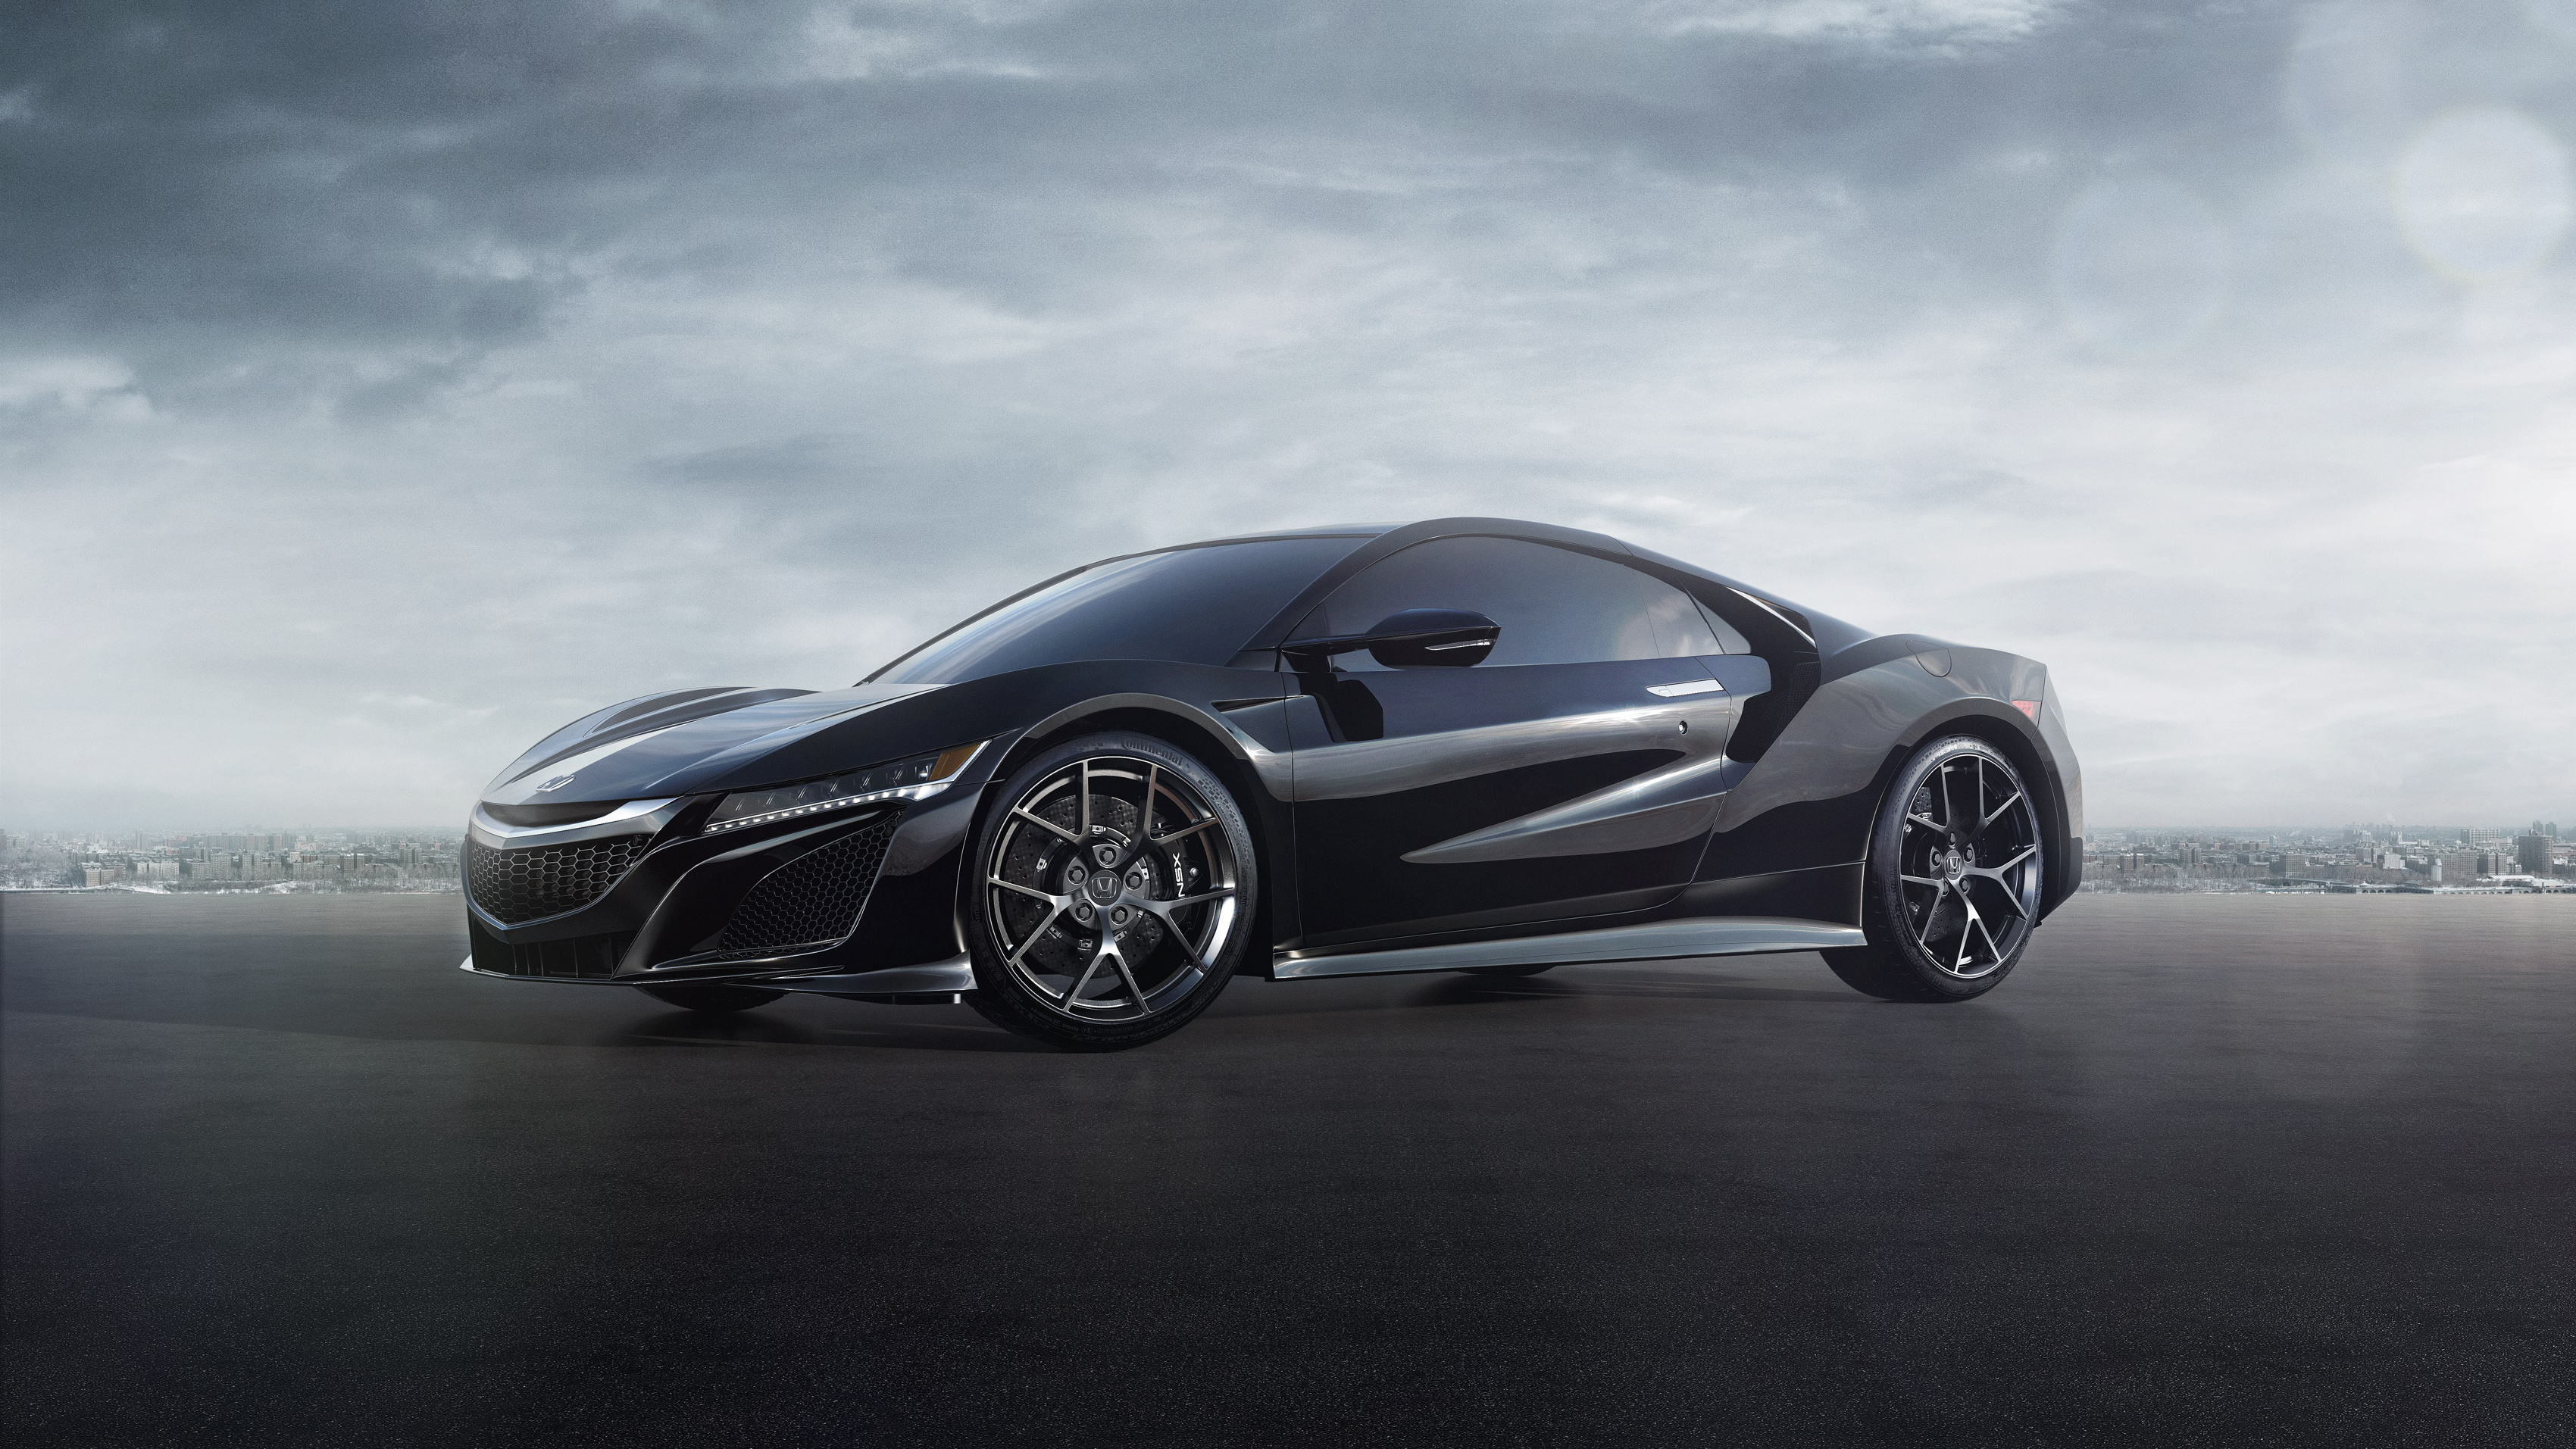 Honda Nsx 2018 Wallpaper